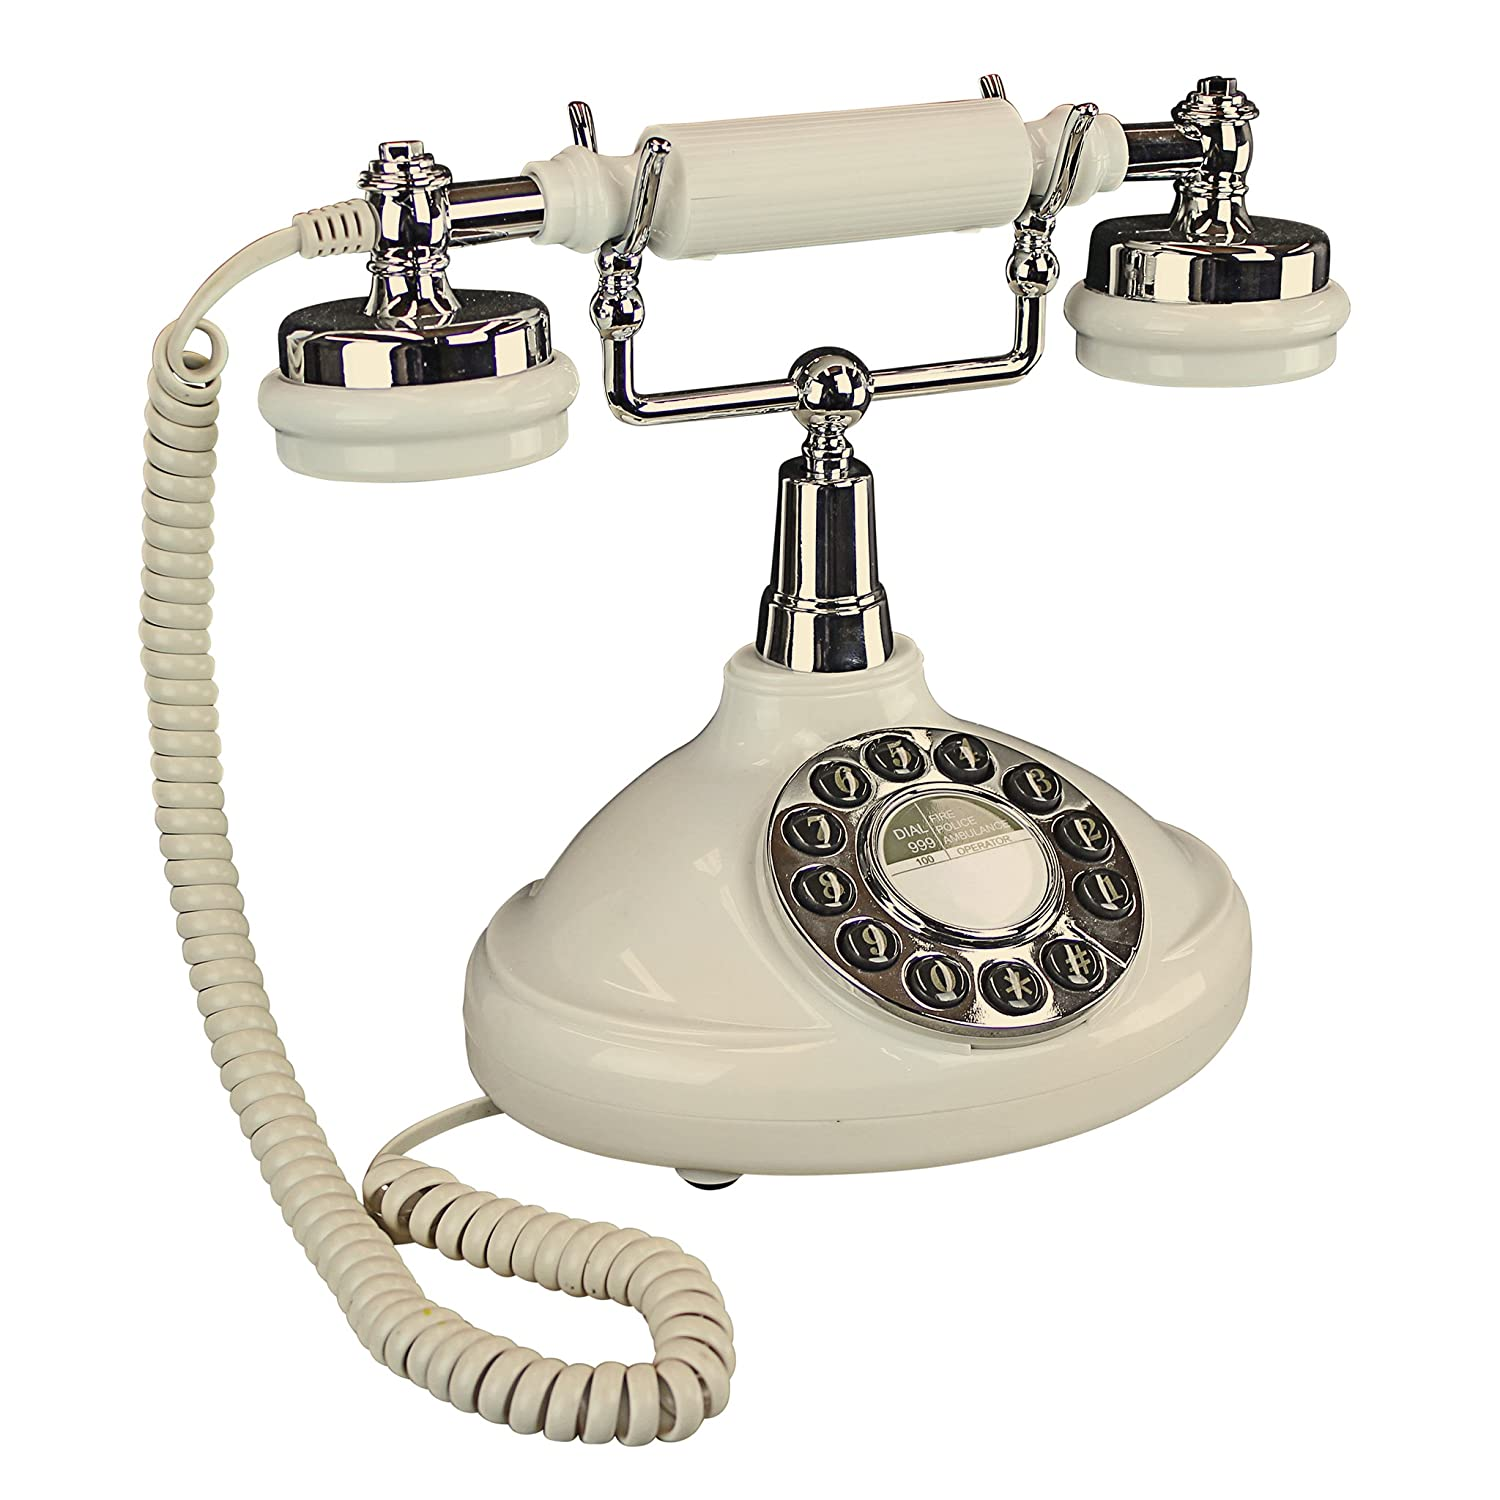 Design Toscano Brittany Neophone 1929 Rotary Corded Retro Phone-Vintage Decorative Telephones, one Size, White PM81920